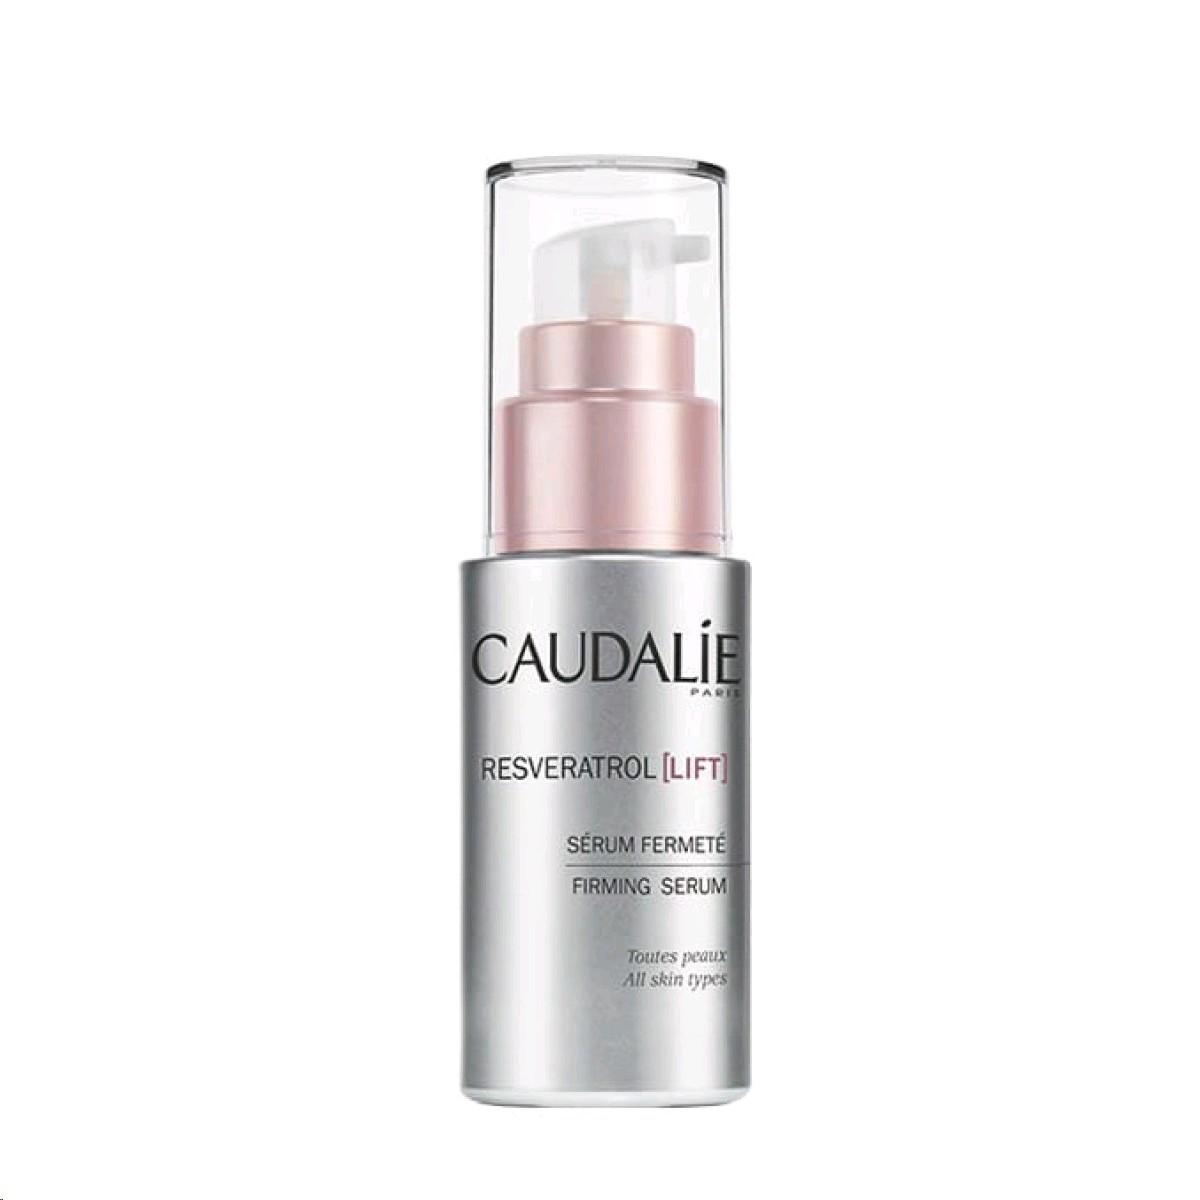 CAUDALIE RESVERATROL LIFT SERUM FERMESA 30ML